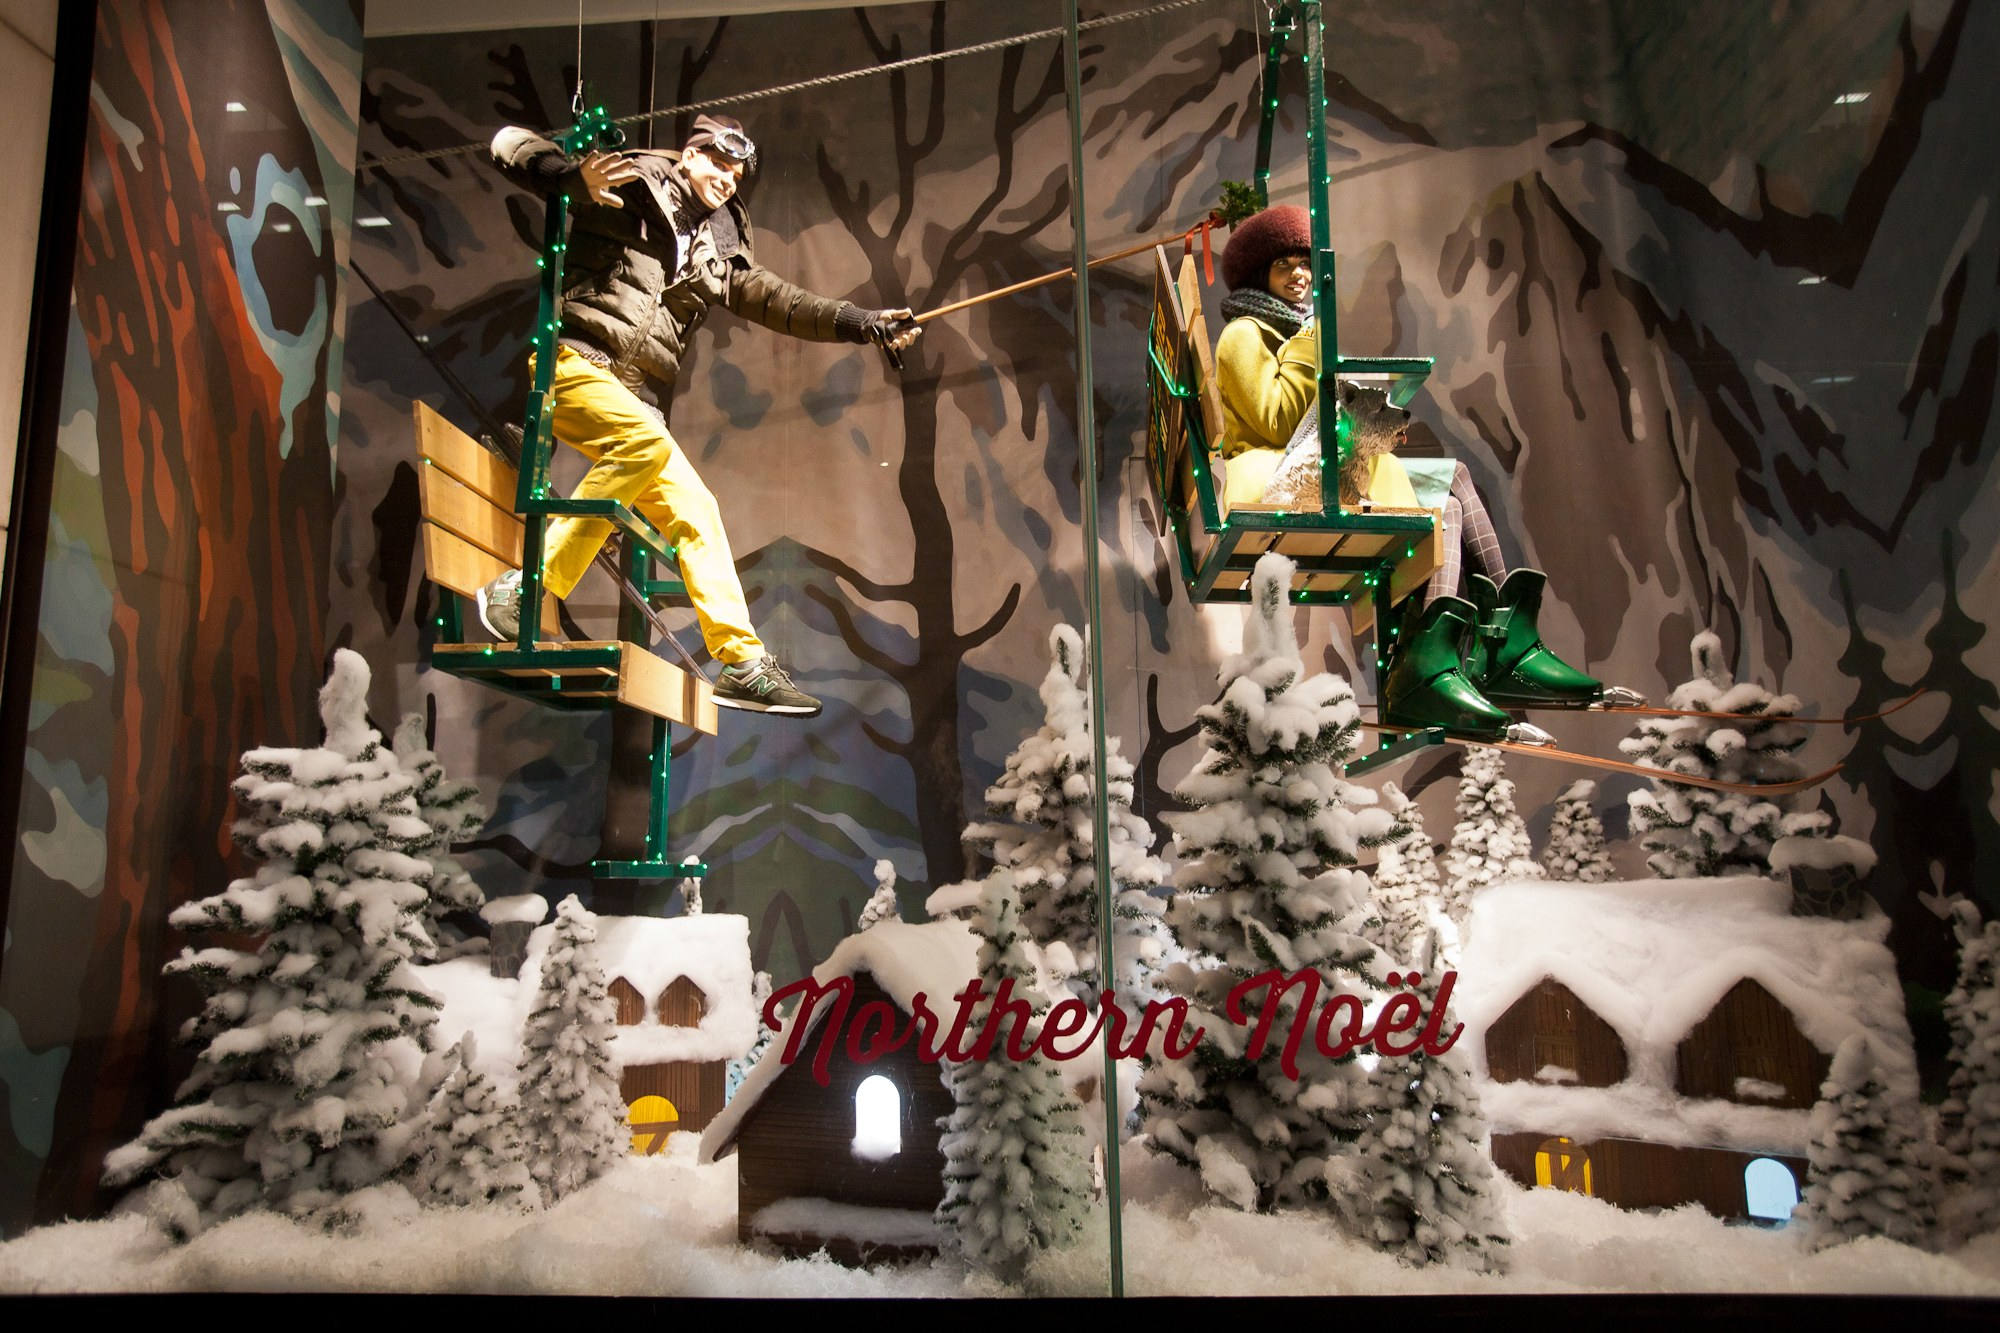 In this Nothern Noel decoration for the Christmas display, we have two playful mannequins in chairlifts, snowed firs and a forest canvas.